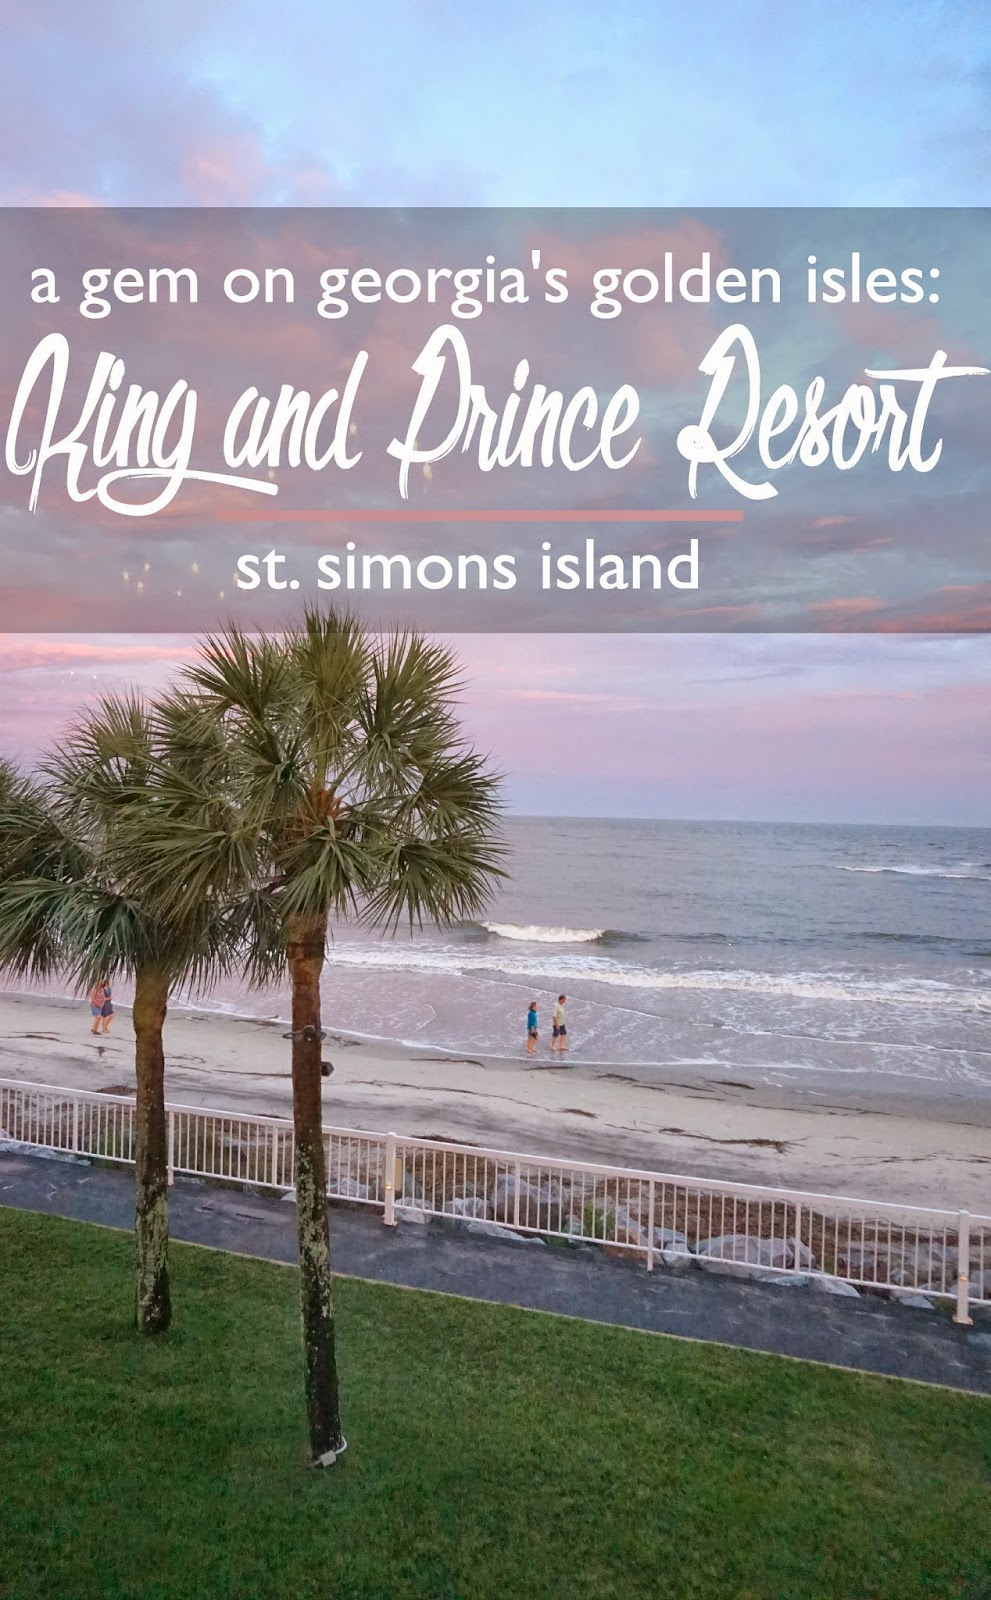 A Gem on Georgia's Golden Isles: The King and Prince Resort, St. Simons Island | CosmosMariners.com